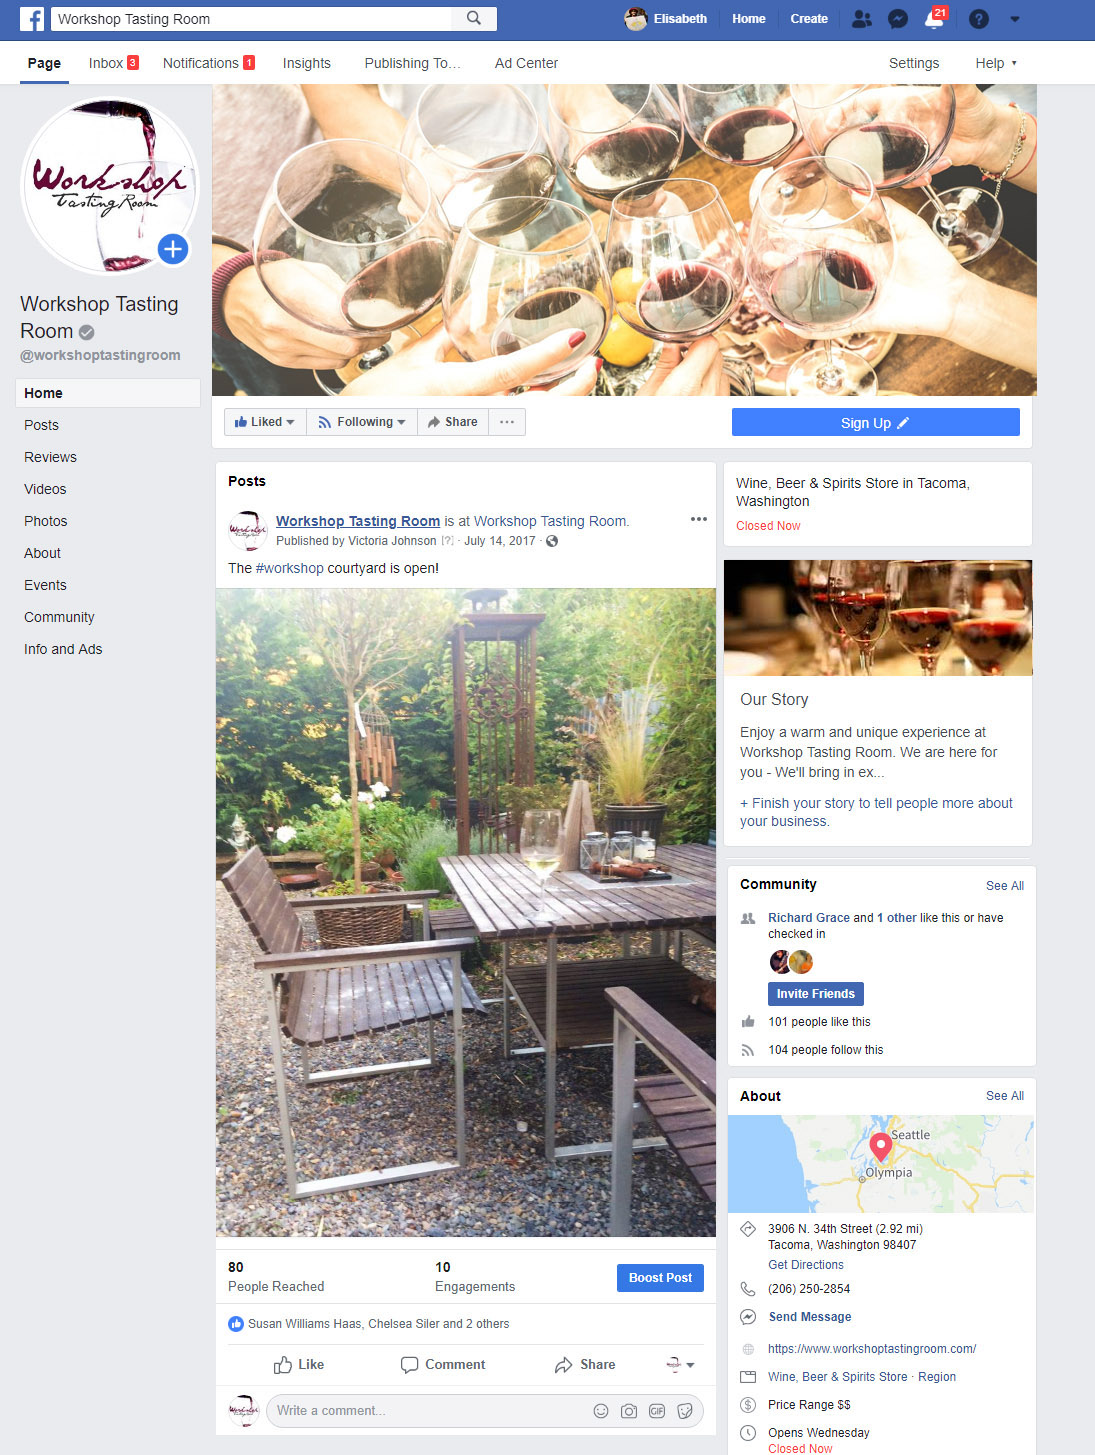 Workshop Tasting Room - screenshot of Facebook page - Elisabeth Parker's portfolio.